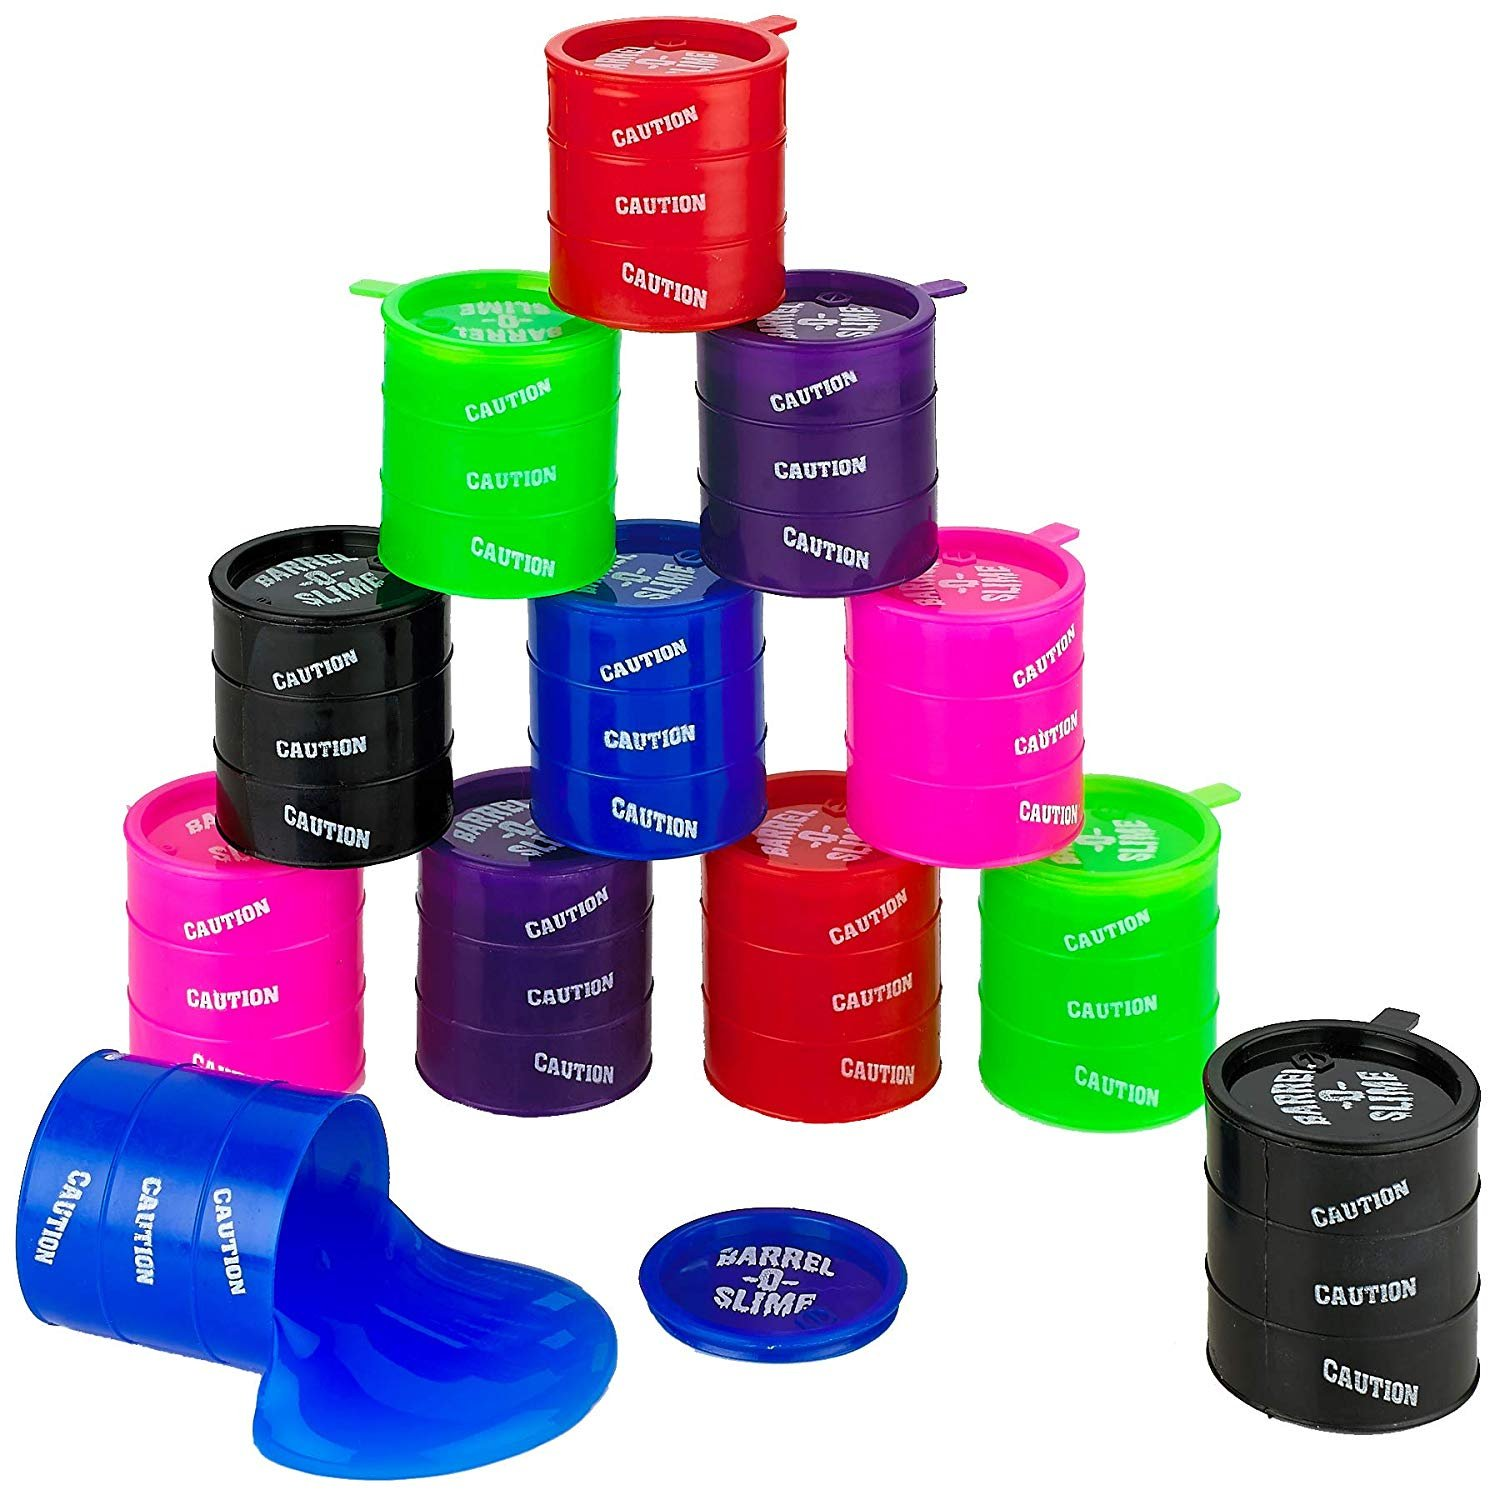 Barrel Of Slime - Container 3 Inches - 12 Pack - Assorted Colors - For Kids Boys And Girls, Party Favor, Fun, Toy, Novelty, Gift, Prize – By Kidsco